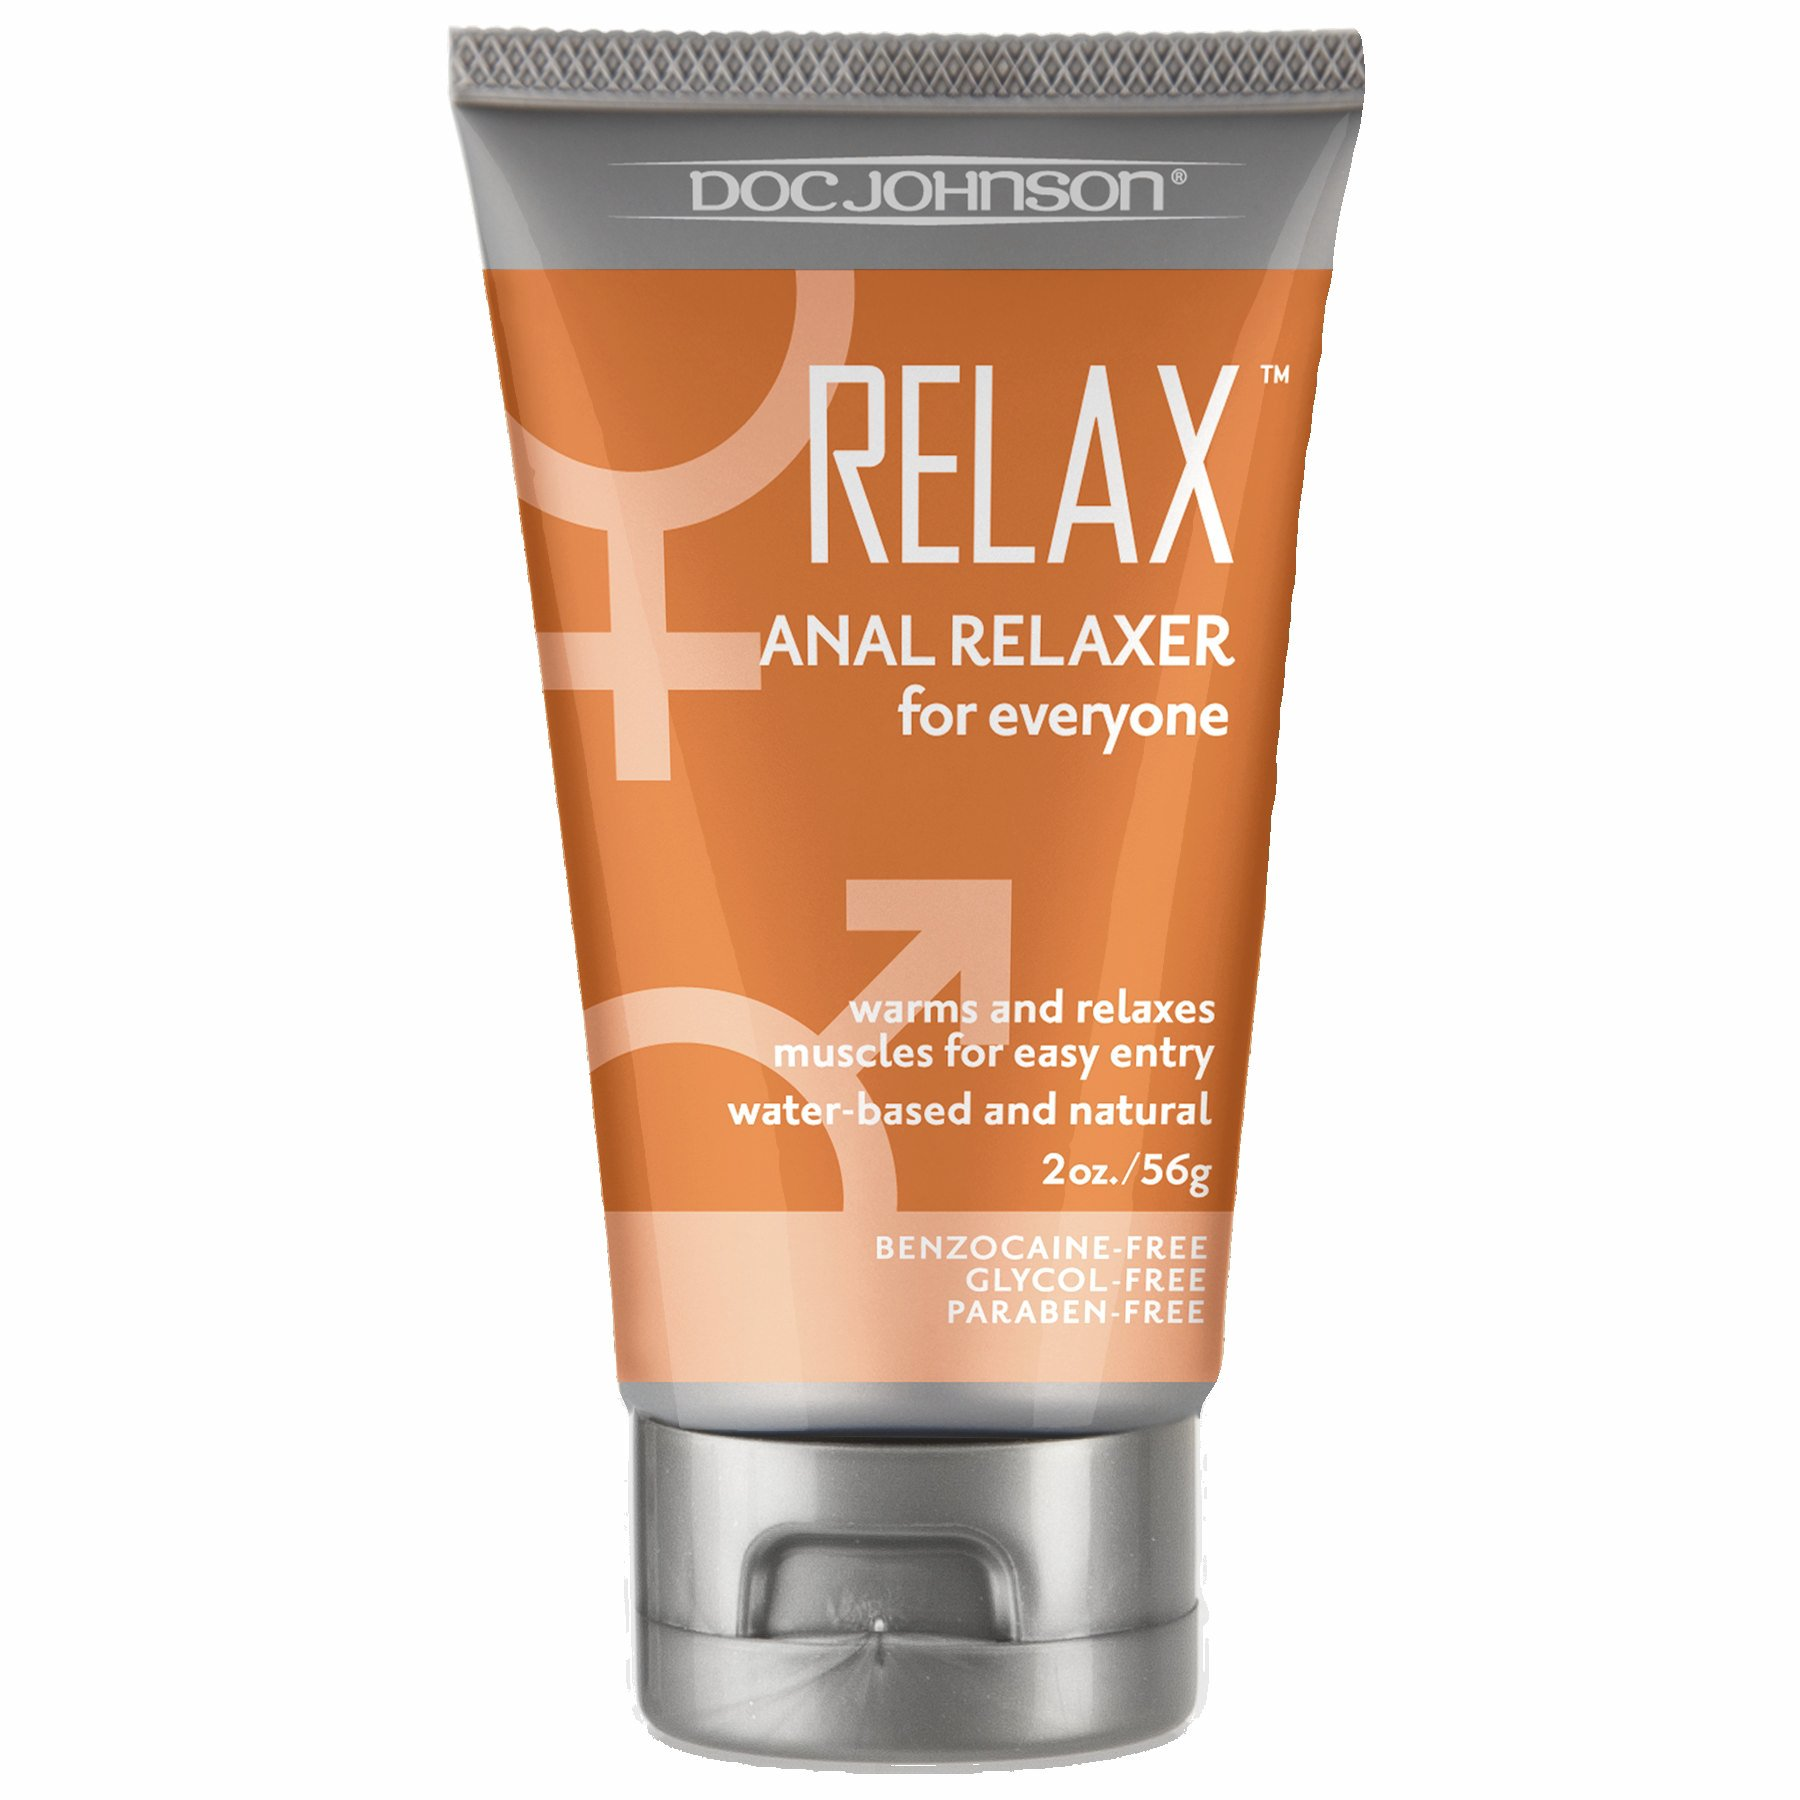 Relax Anal Relaxer Cream 2 oz.